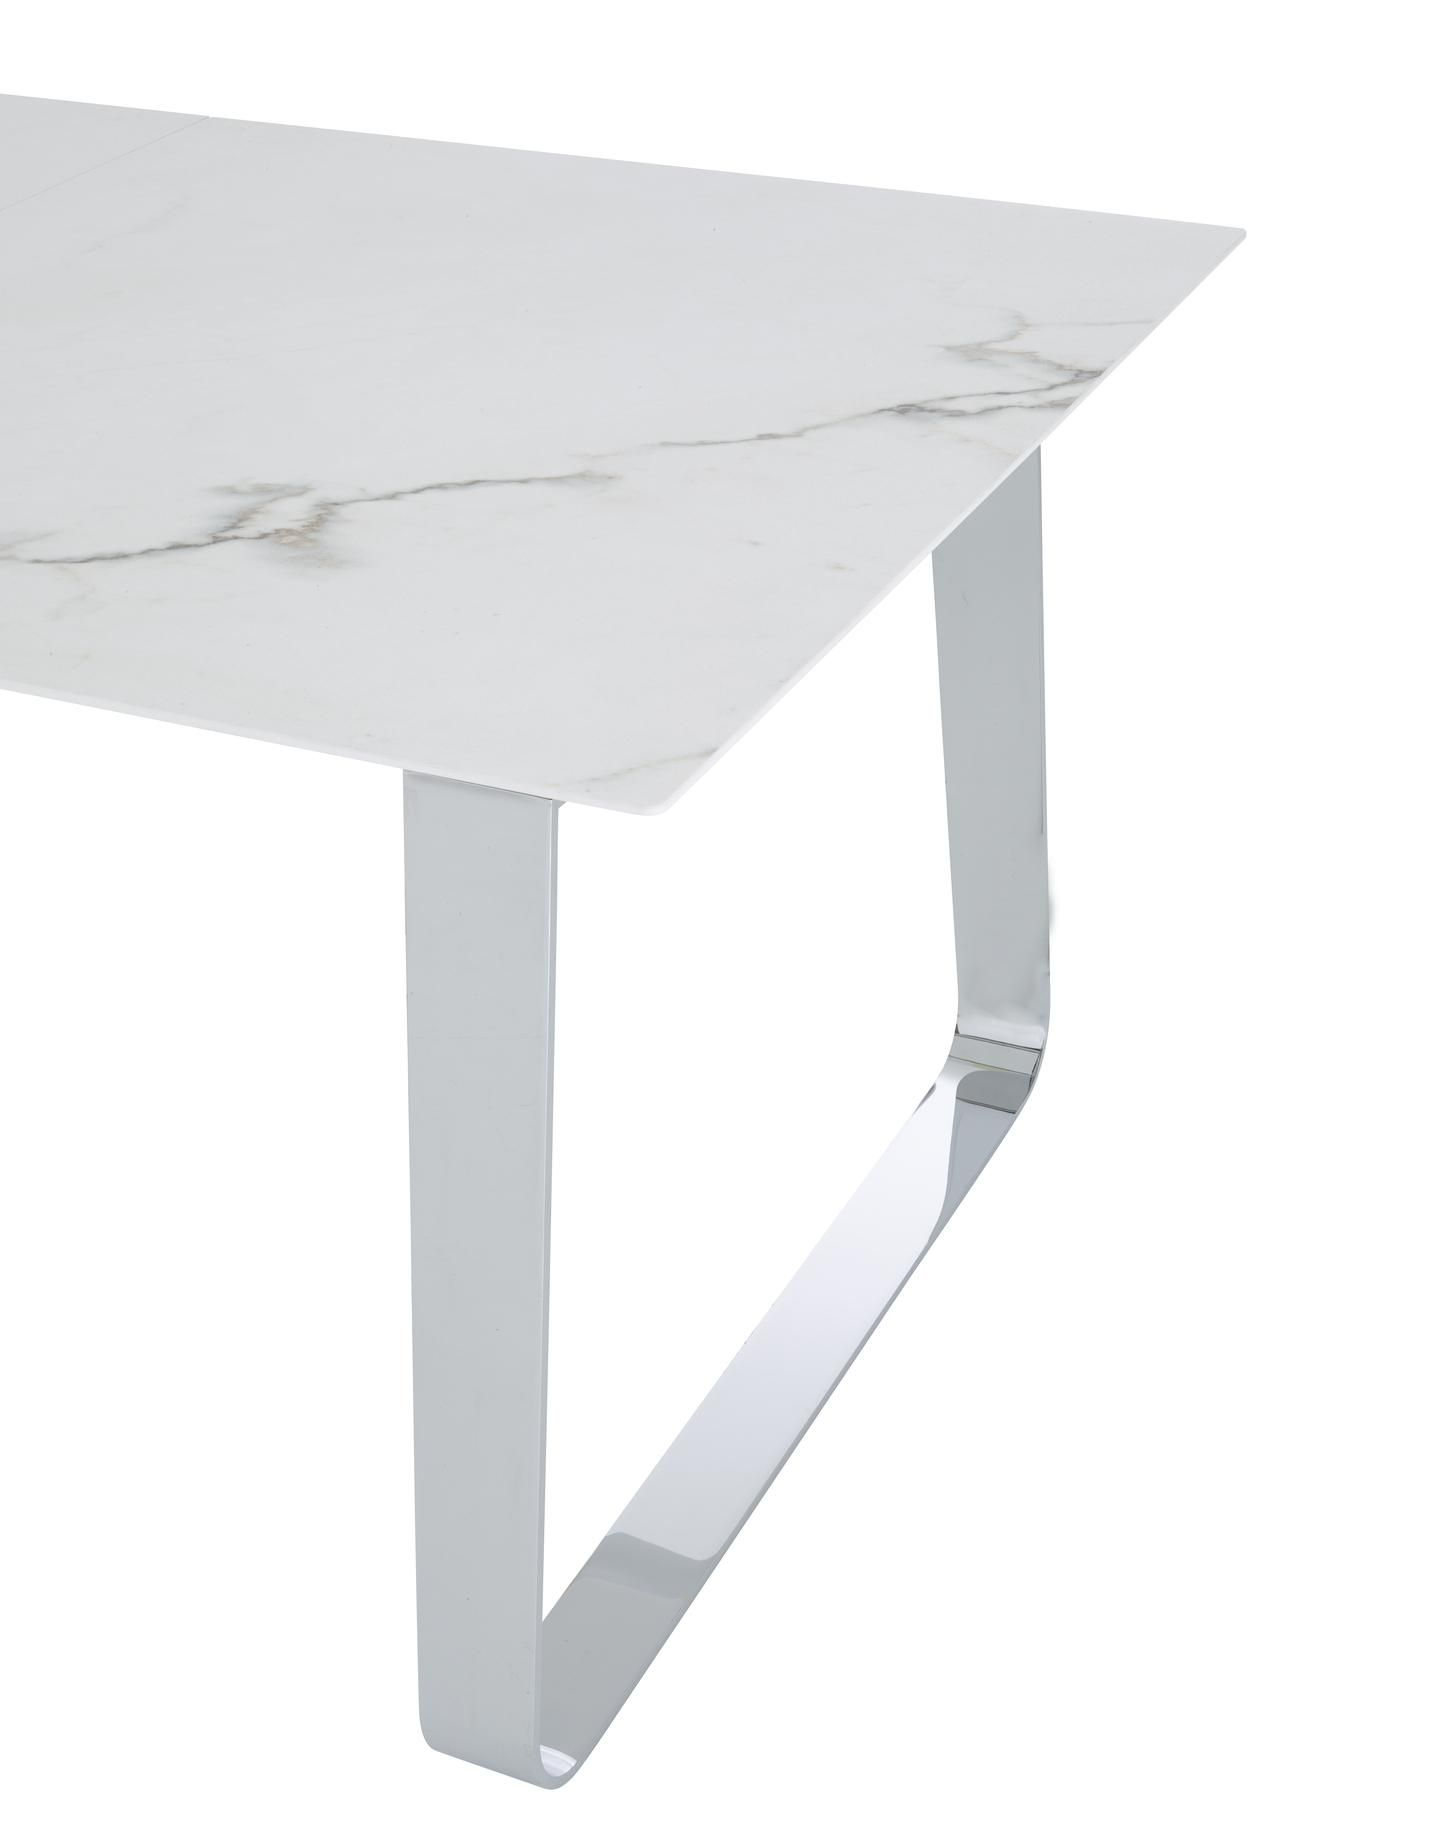 f5332704f4e256d307f91f5c3adcf90c Meilleur De De Table Haute Fly Conception